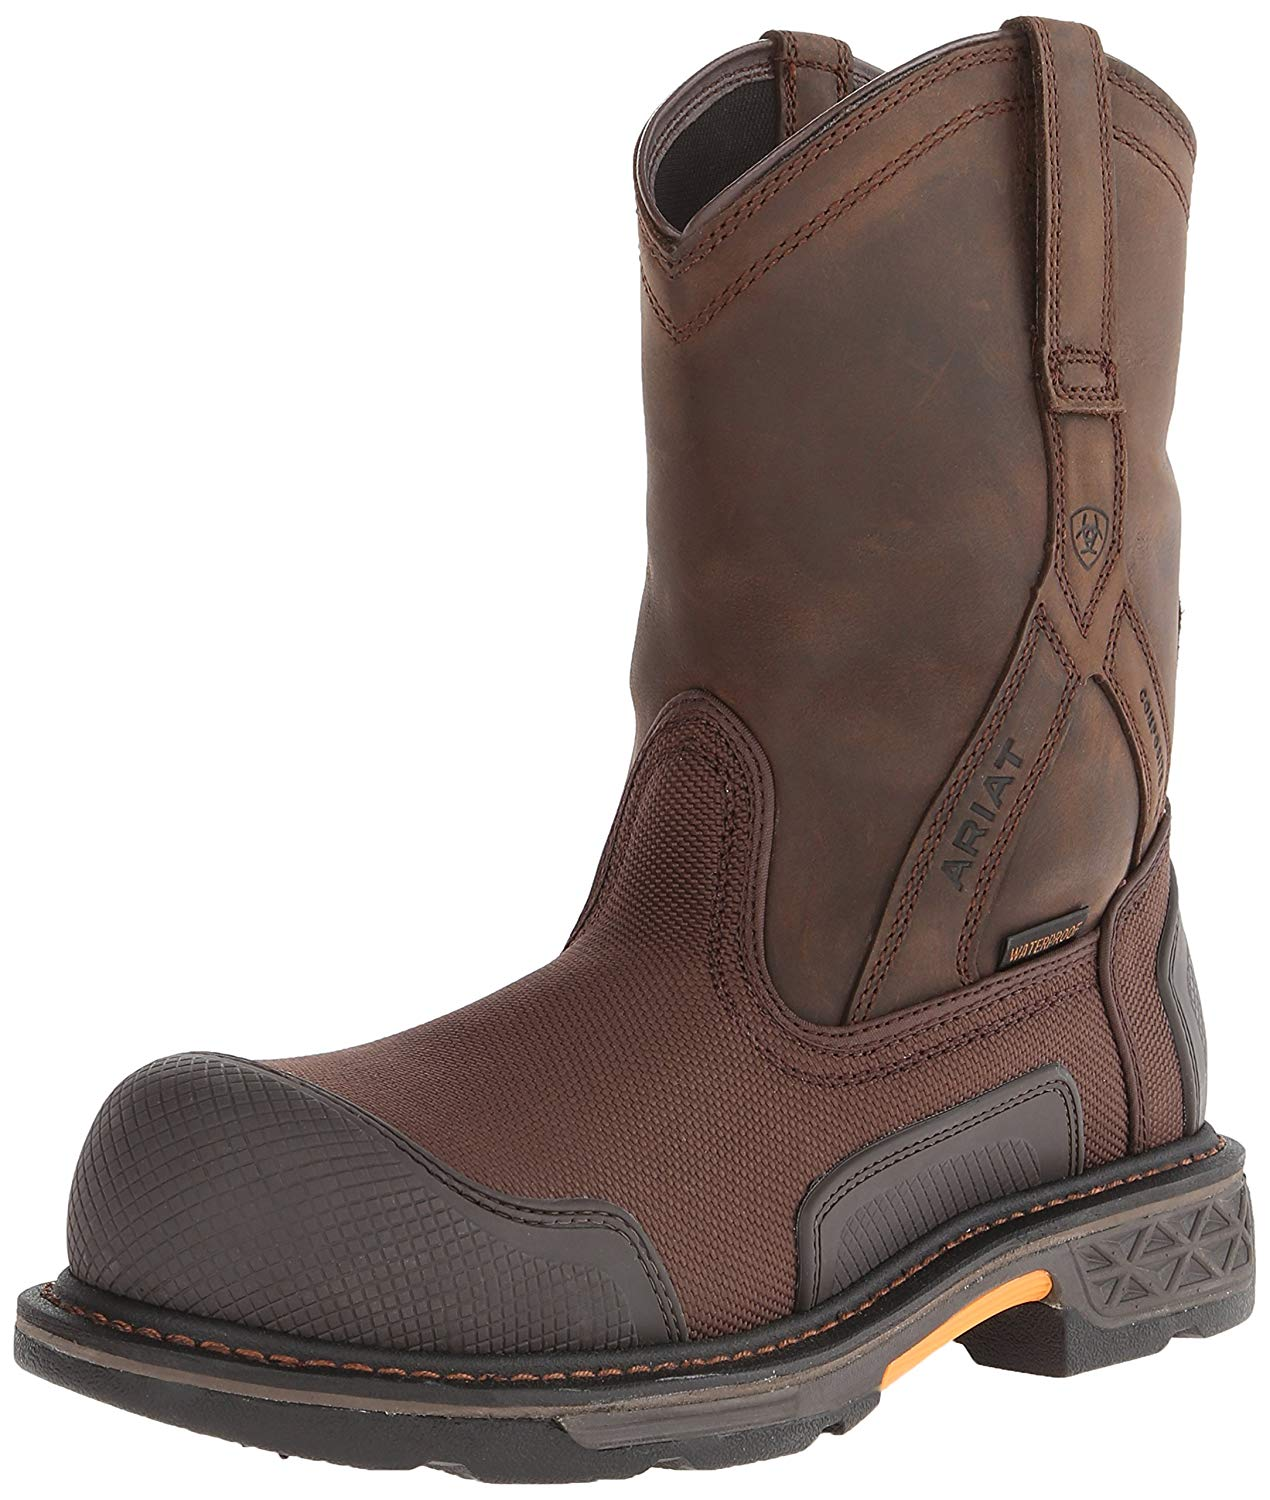 385ad19e5c8 Details about Ariat Men's Overdrive XTR Pull-on H2O Composite Toe Work  Boot, Brown, Size 10.5